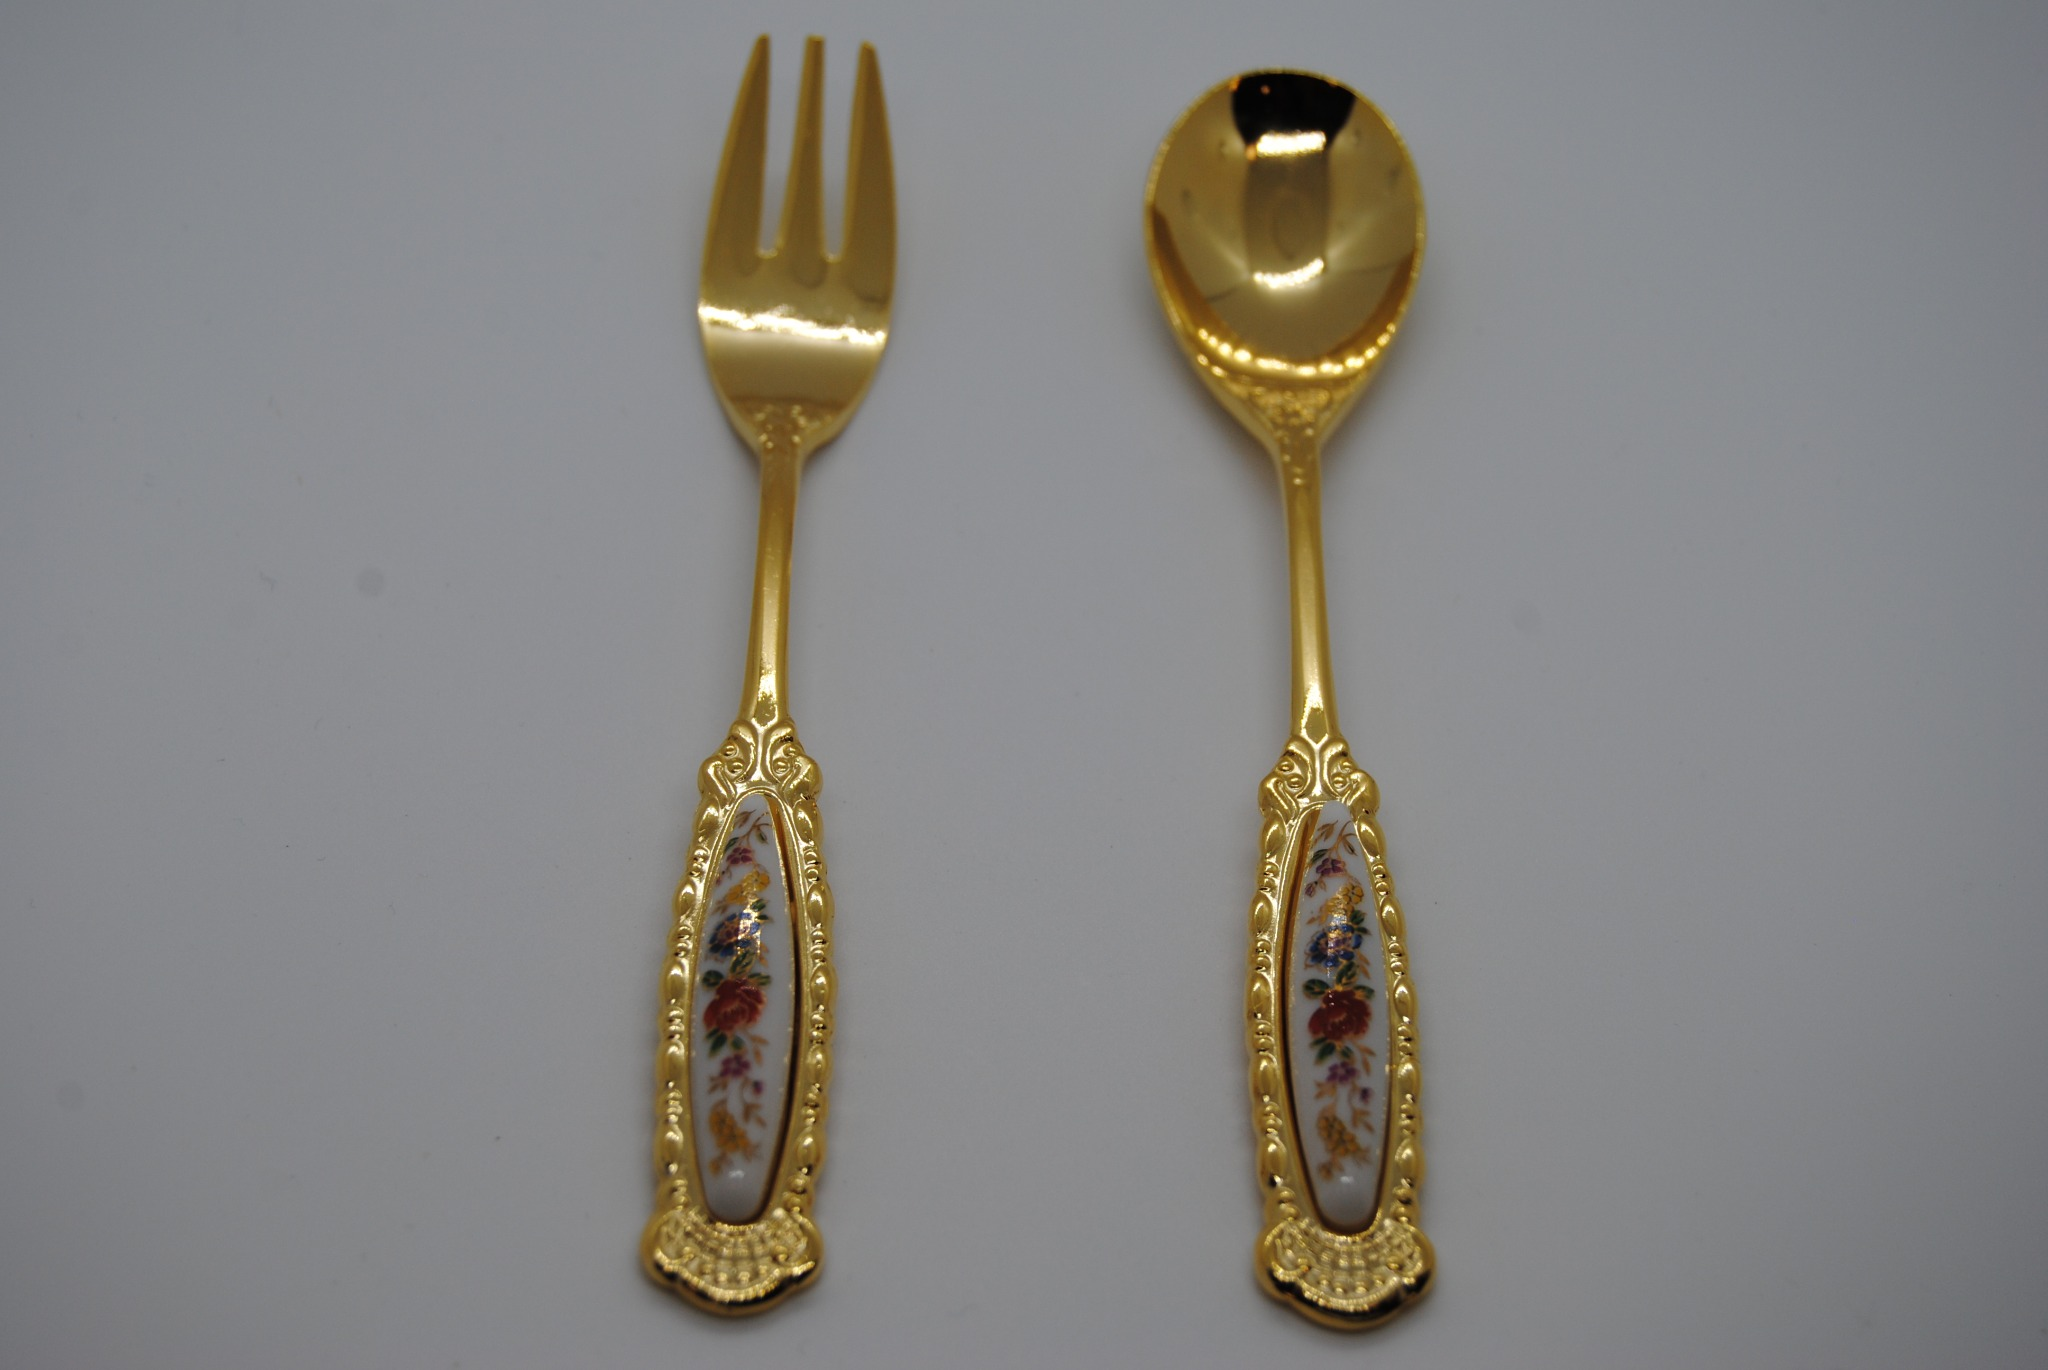 Vintage Satin Box with Gold Tone Cocktail Forks and Spoons (K)